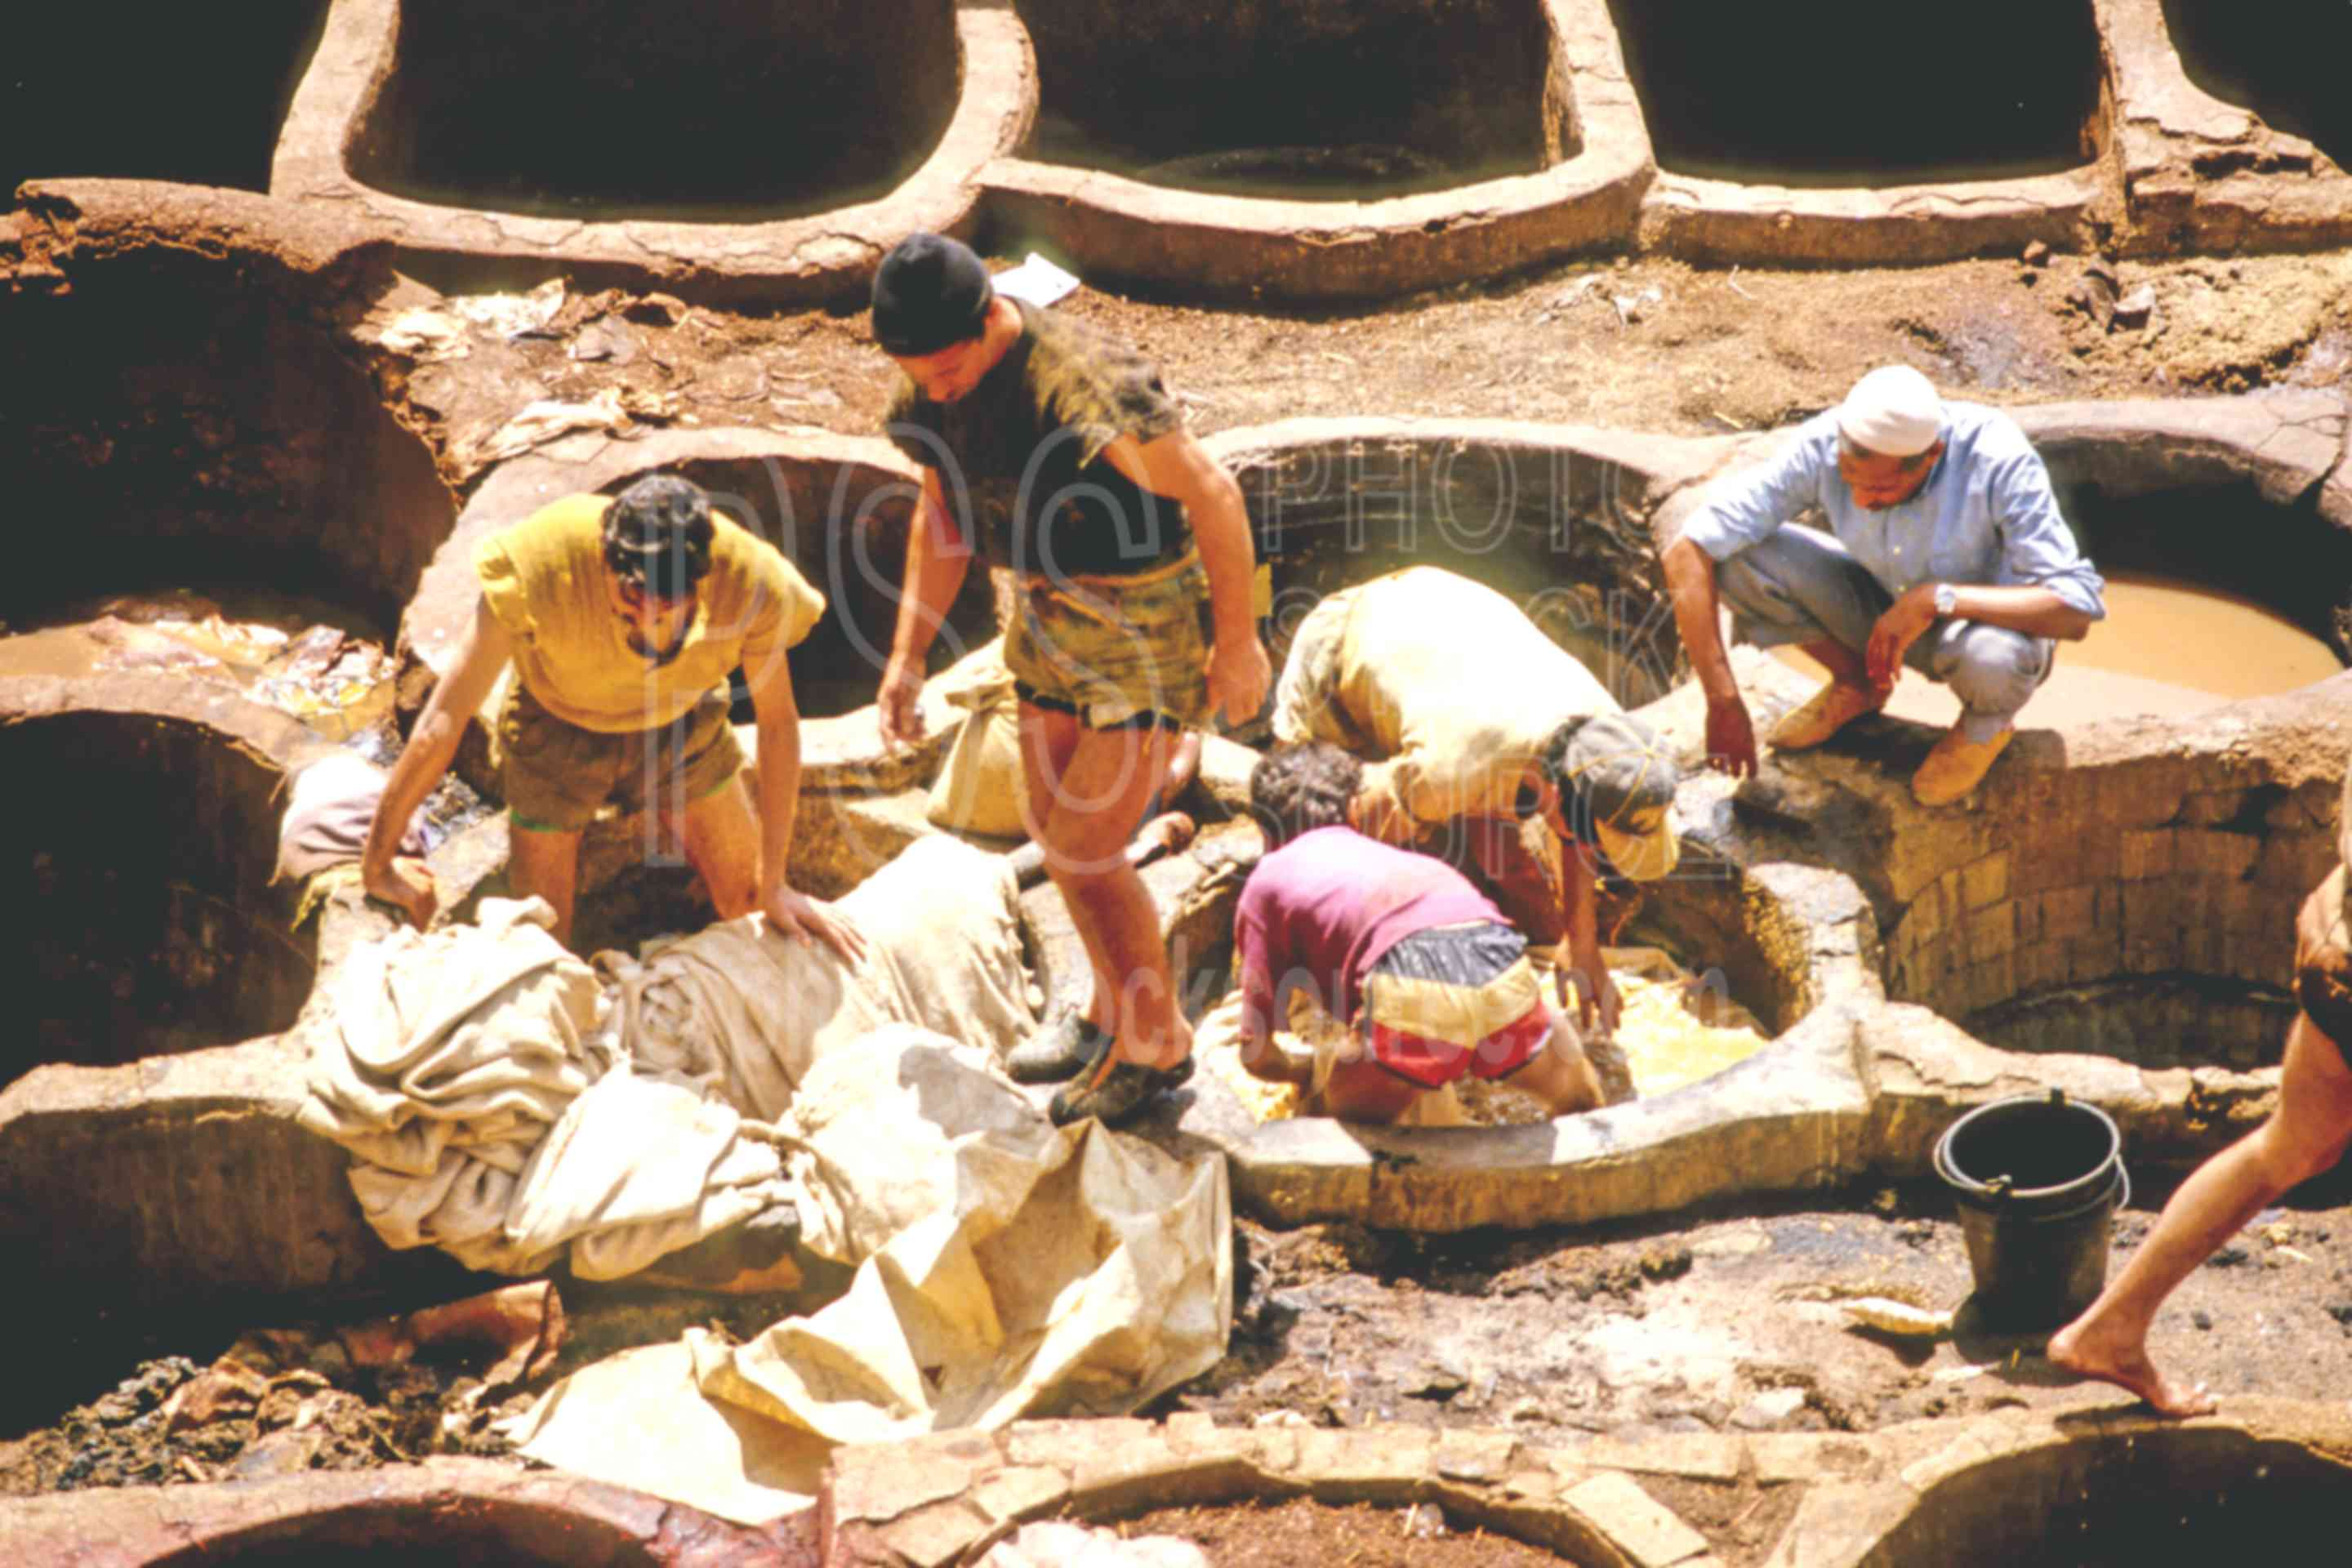 Workers in the Tannery,fezs,mens,skins,tannery,work,worker,fezs,cargo